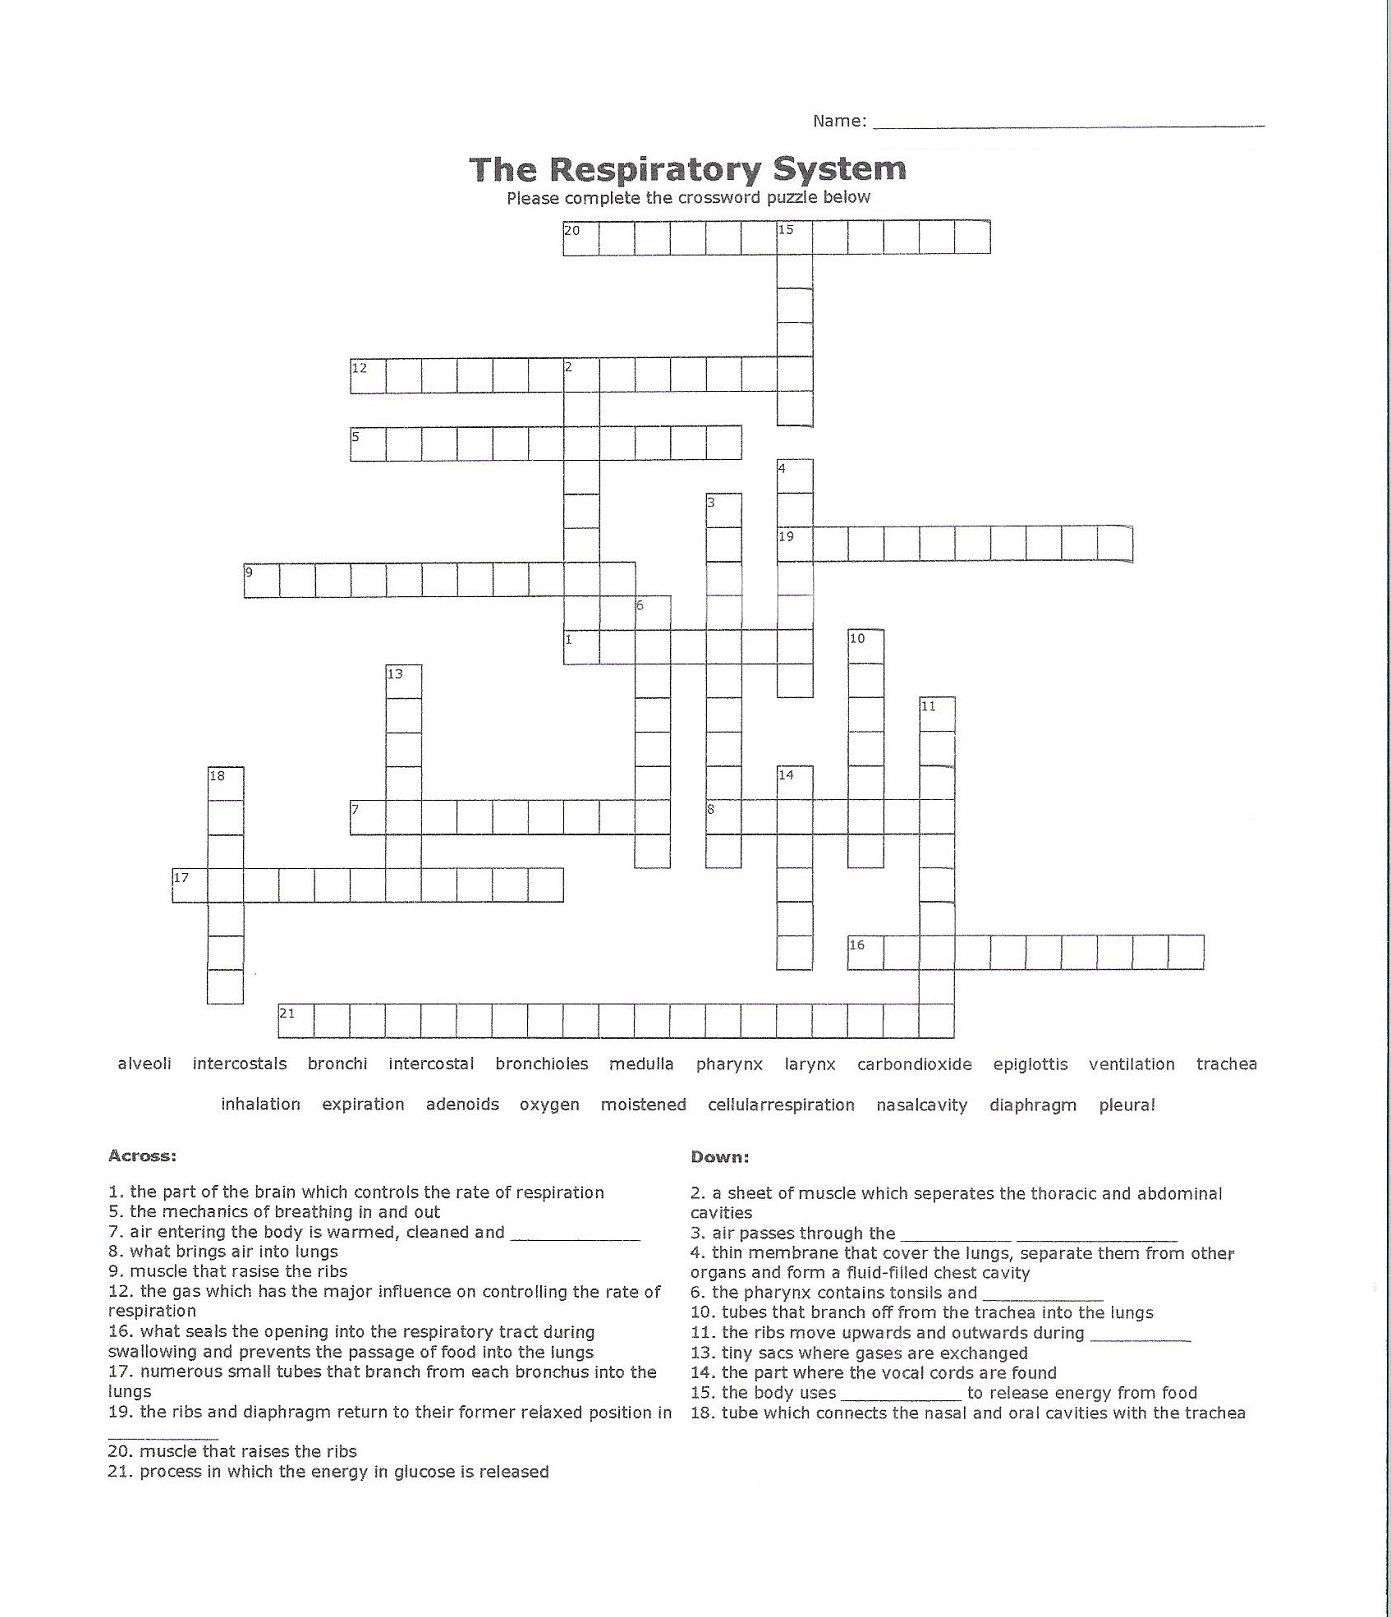 Respiratory System Crossword Puzzle | Activity Shelter | Educative ...